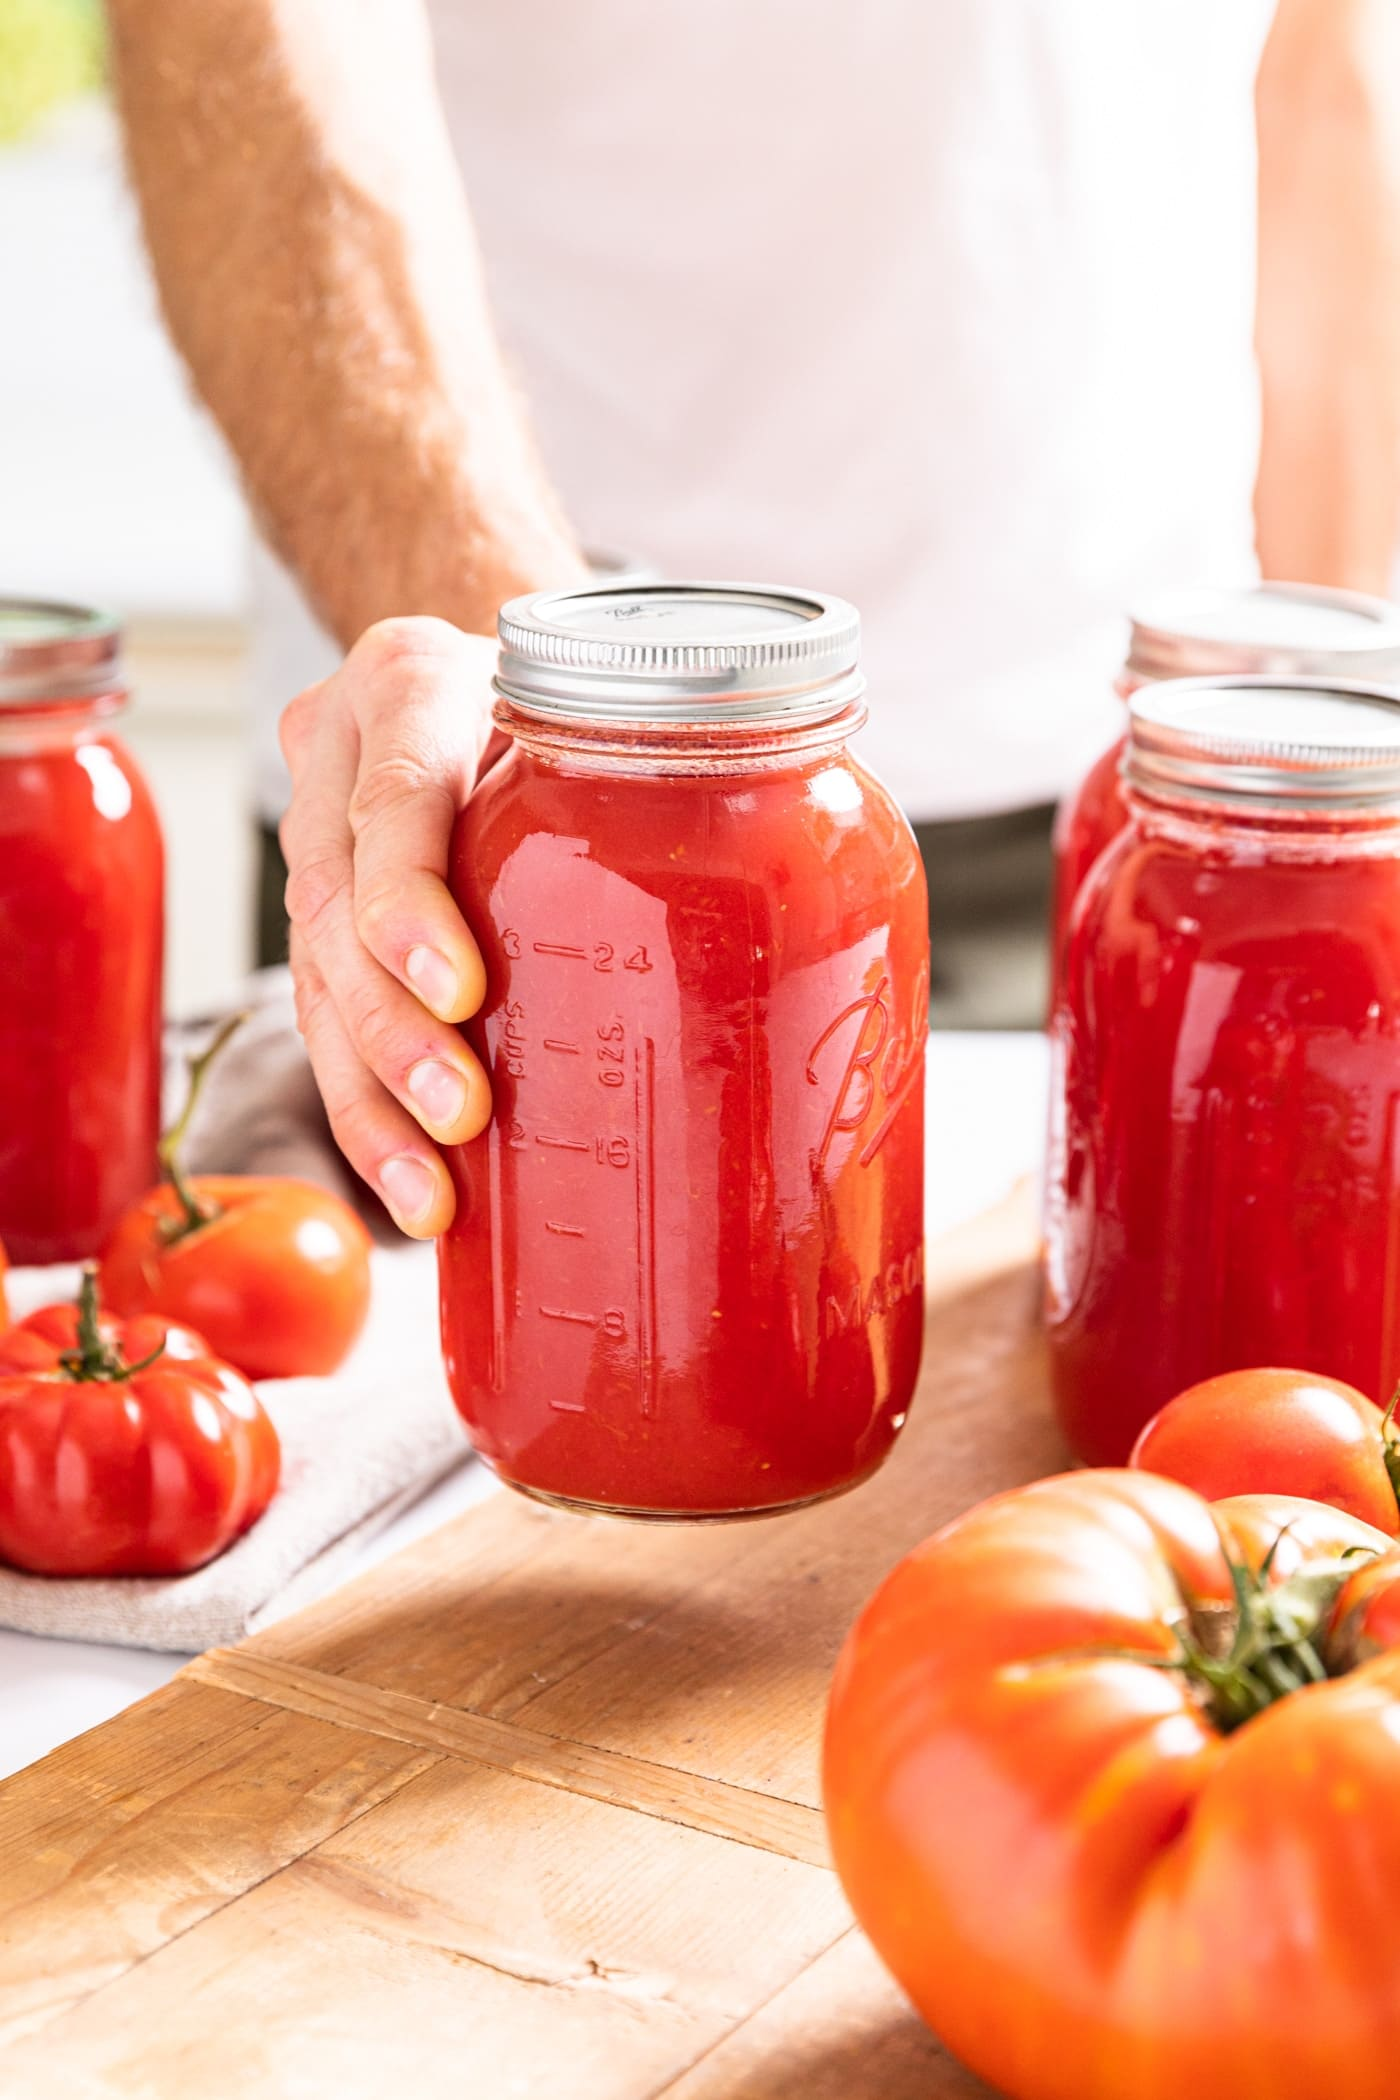 Hand holding glass jar filled with red colored tomato juice after being canned with wood board underneath